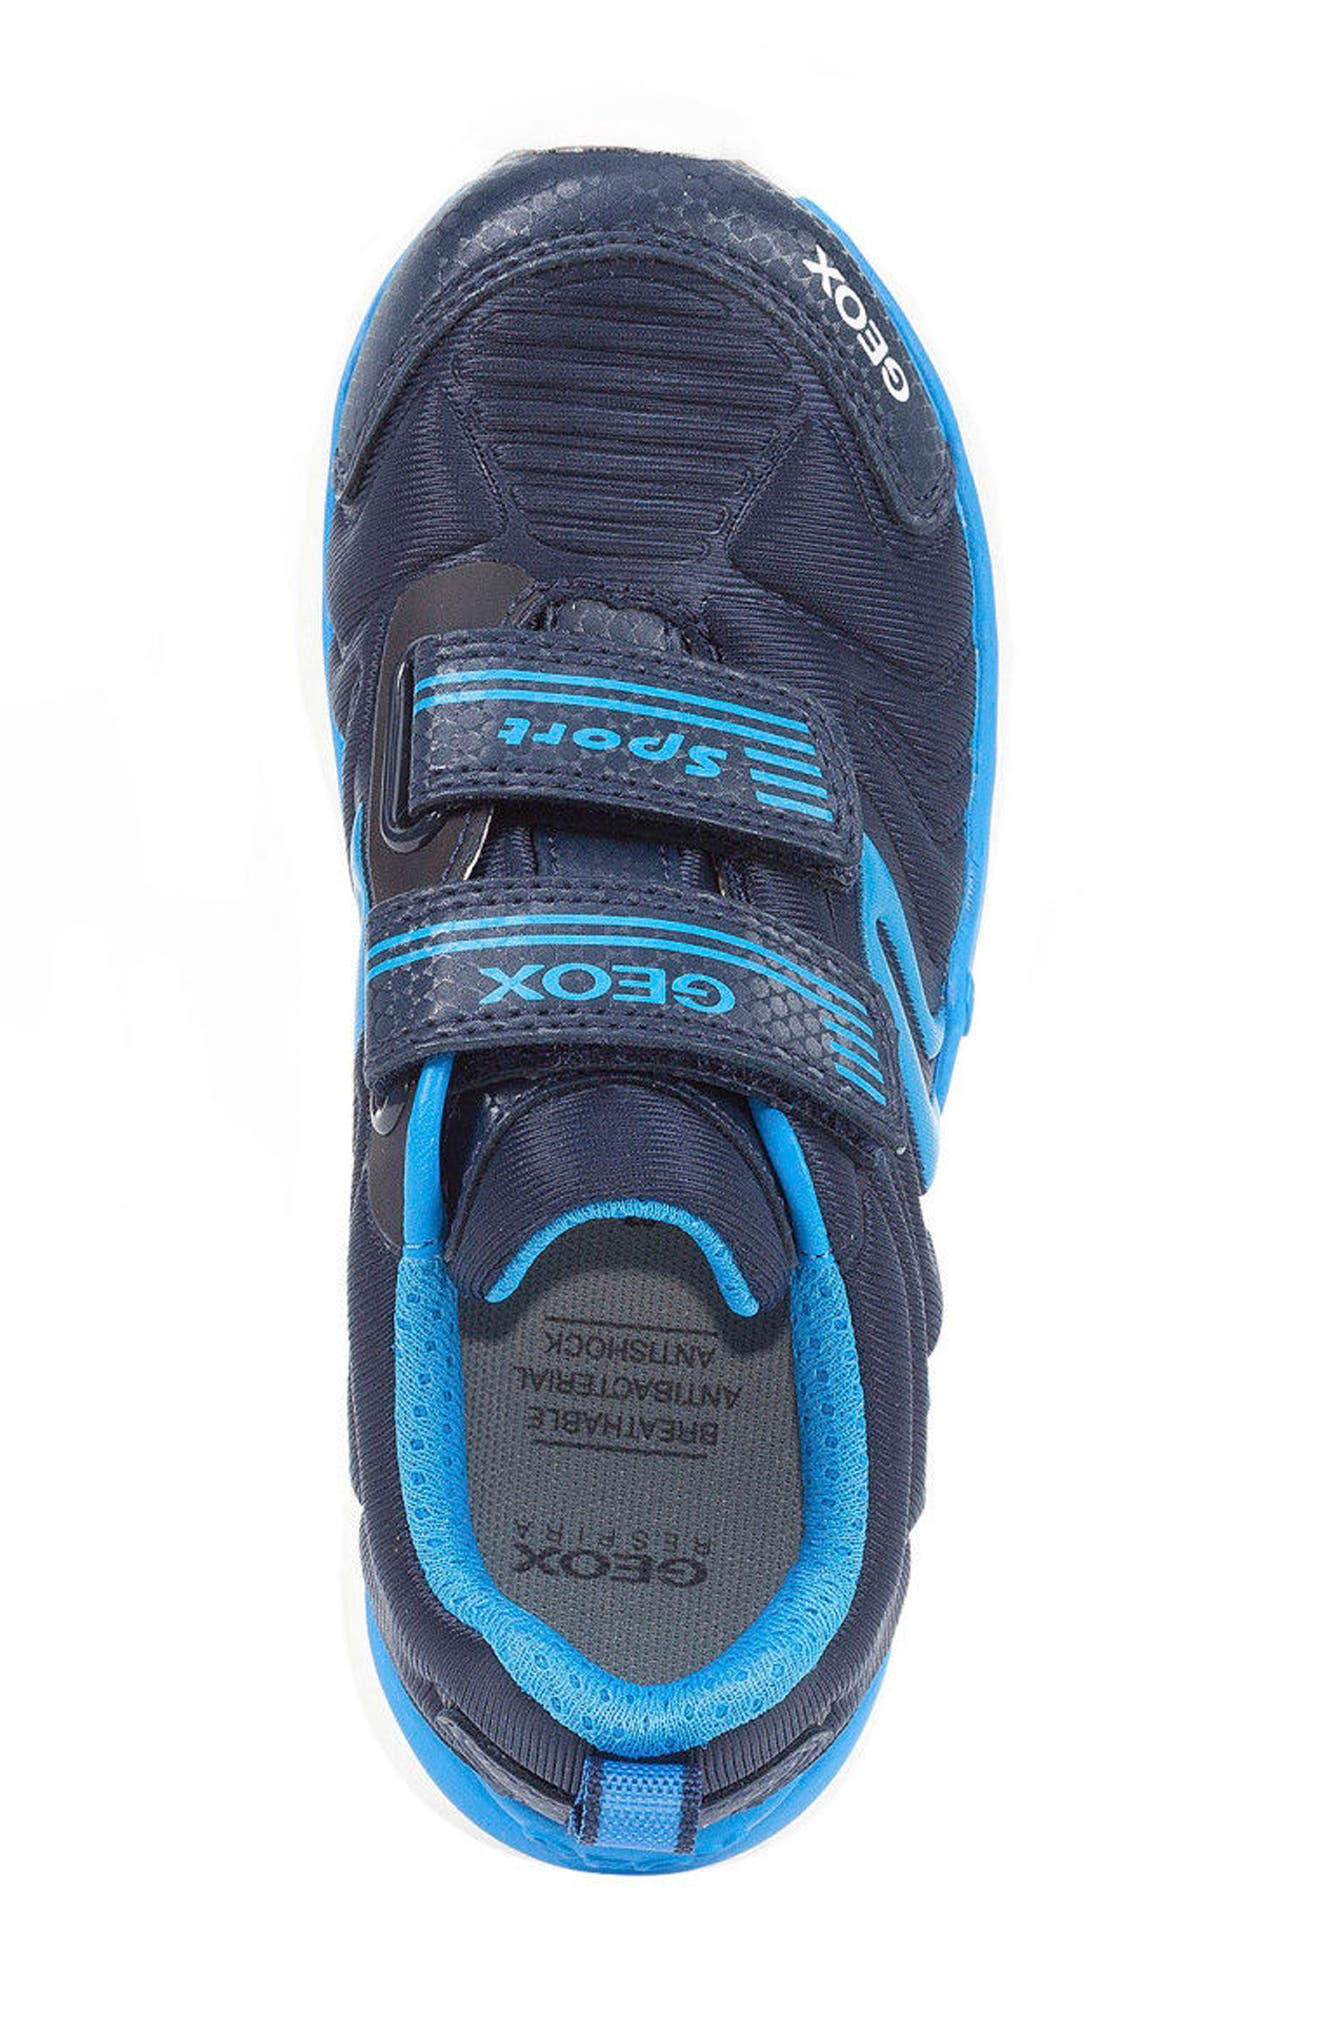 Torque Sneaker,                             Alternate thumbnail 4, color,                             Navy